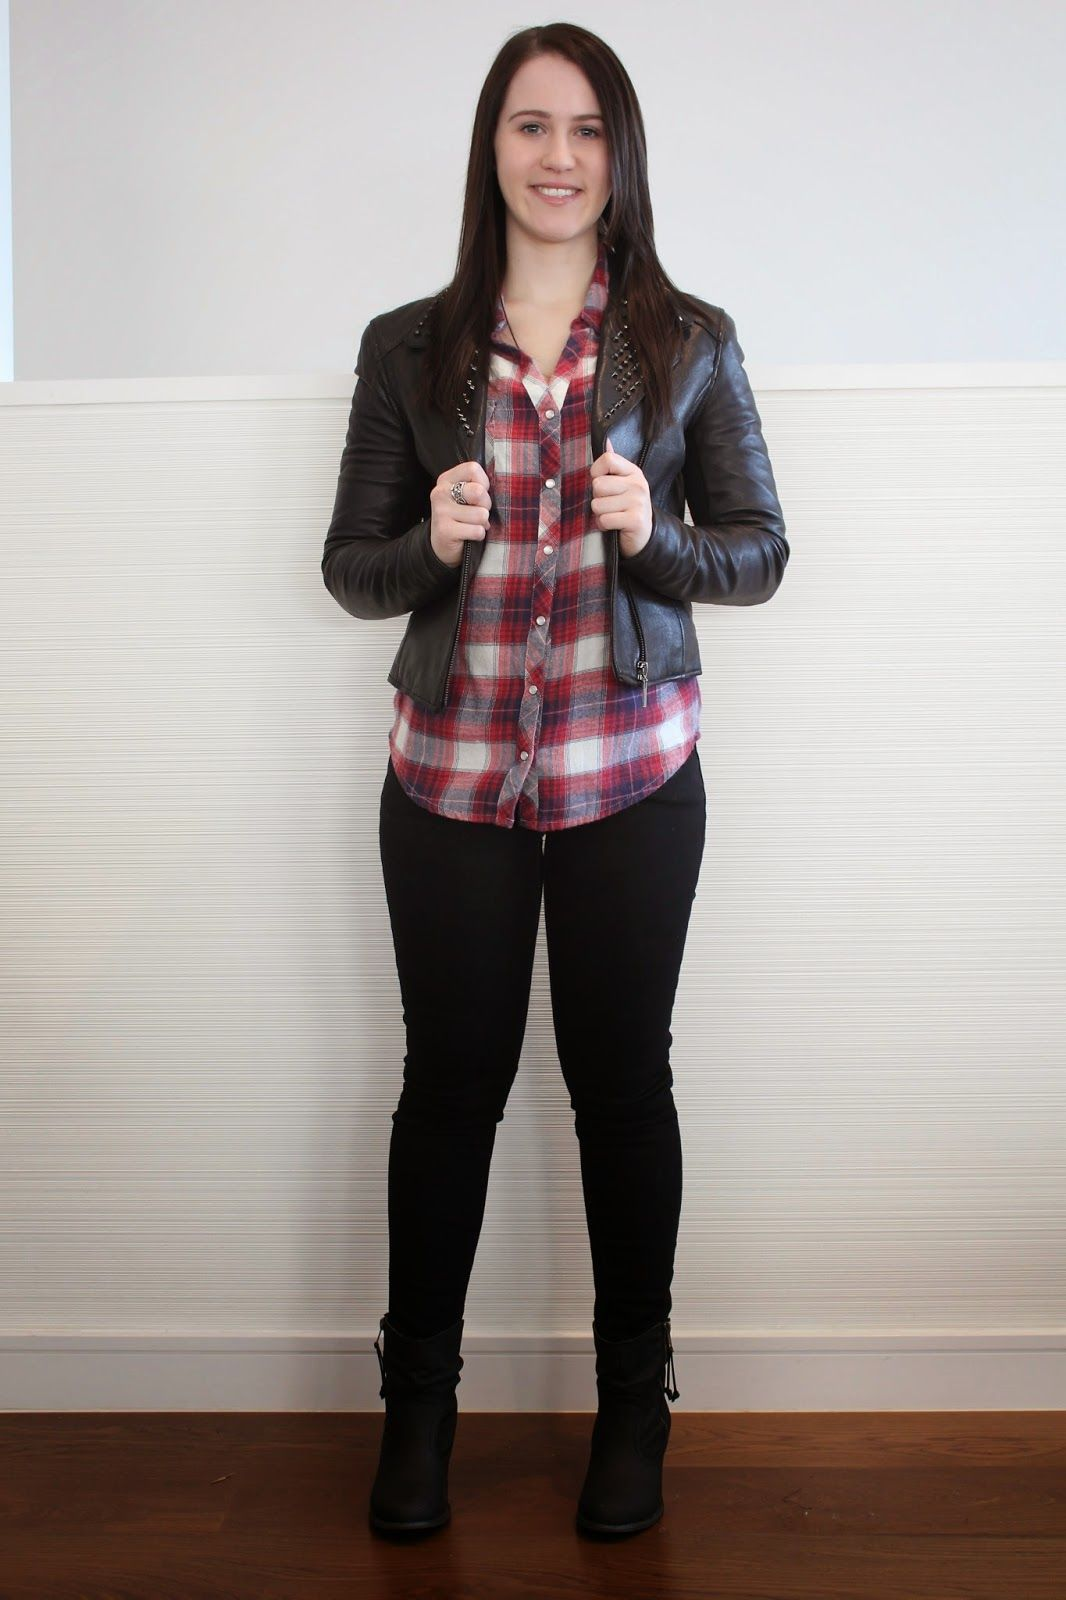 Jeans, flannel/plaid shirt & leather jacket | Brie's Petite World ...